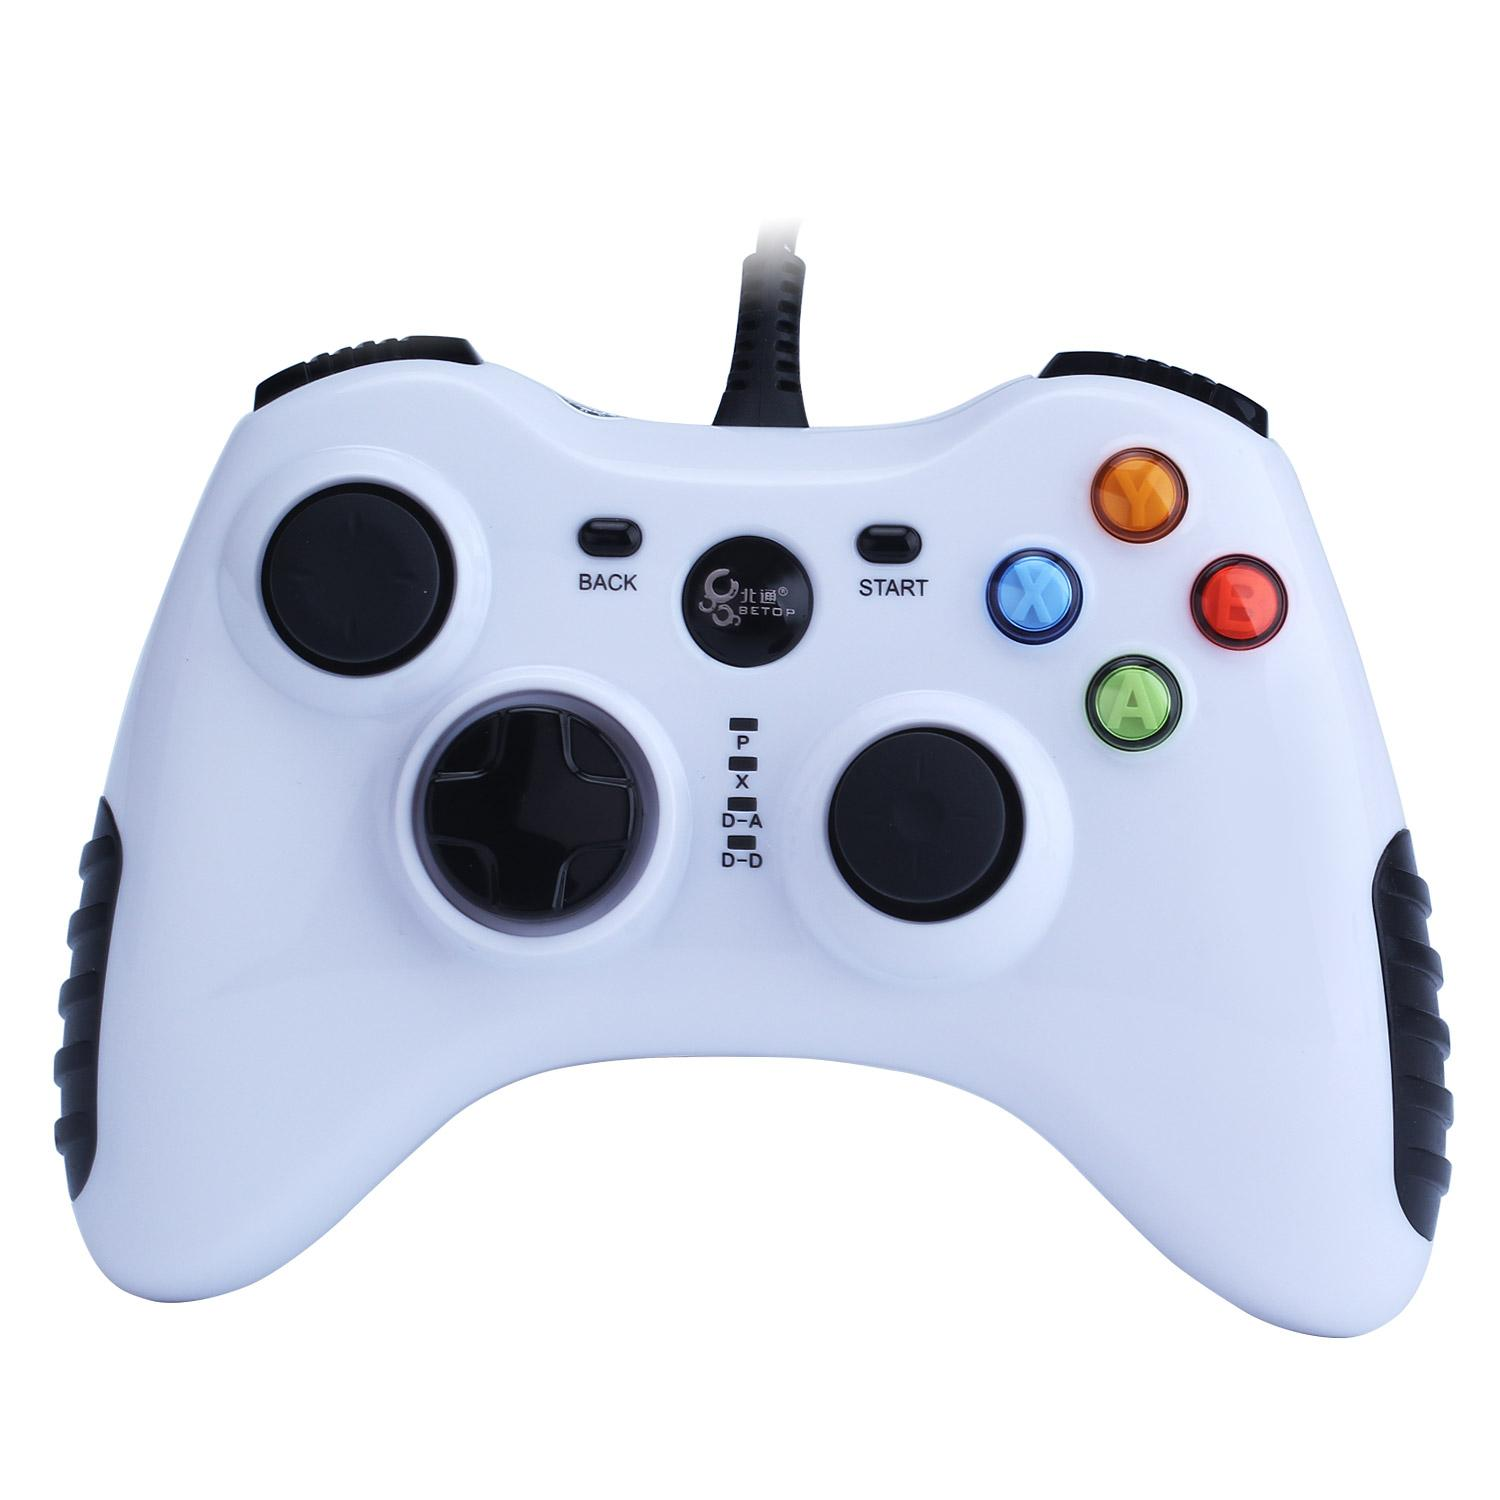 SOBUY Wired Game Controller for PC(Windows XP/7/8/10) Android Devices (White)